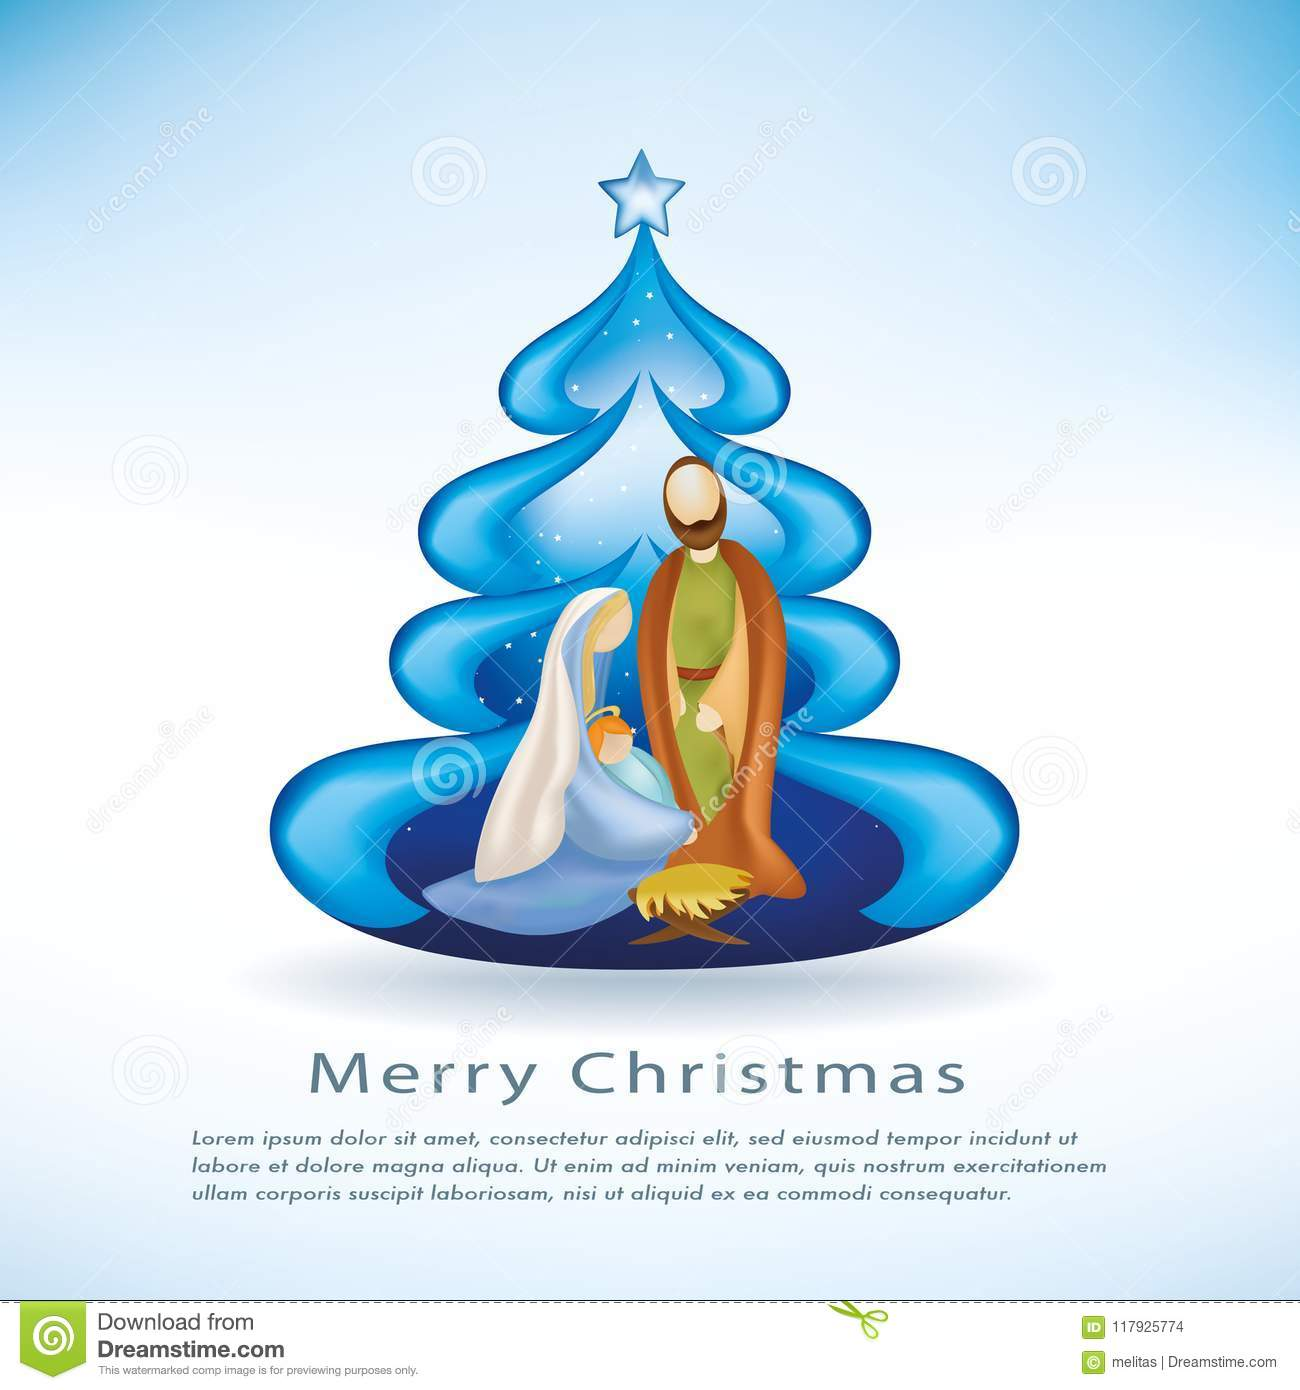 Religious Christmas Cards For Children.Christmas Cards With Nativity Scene Christmas Tree On Blue